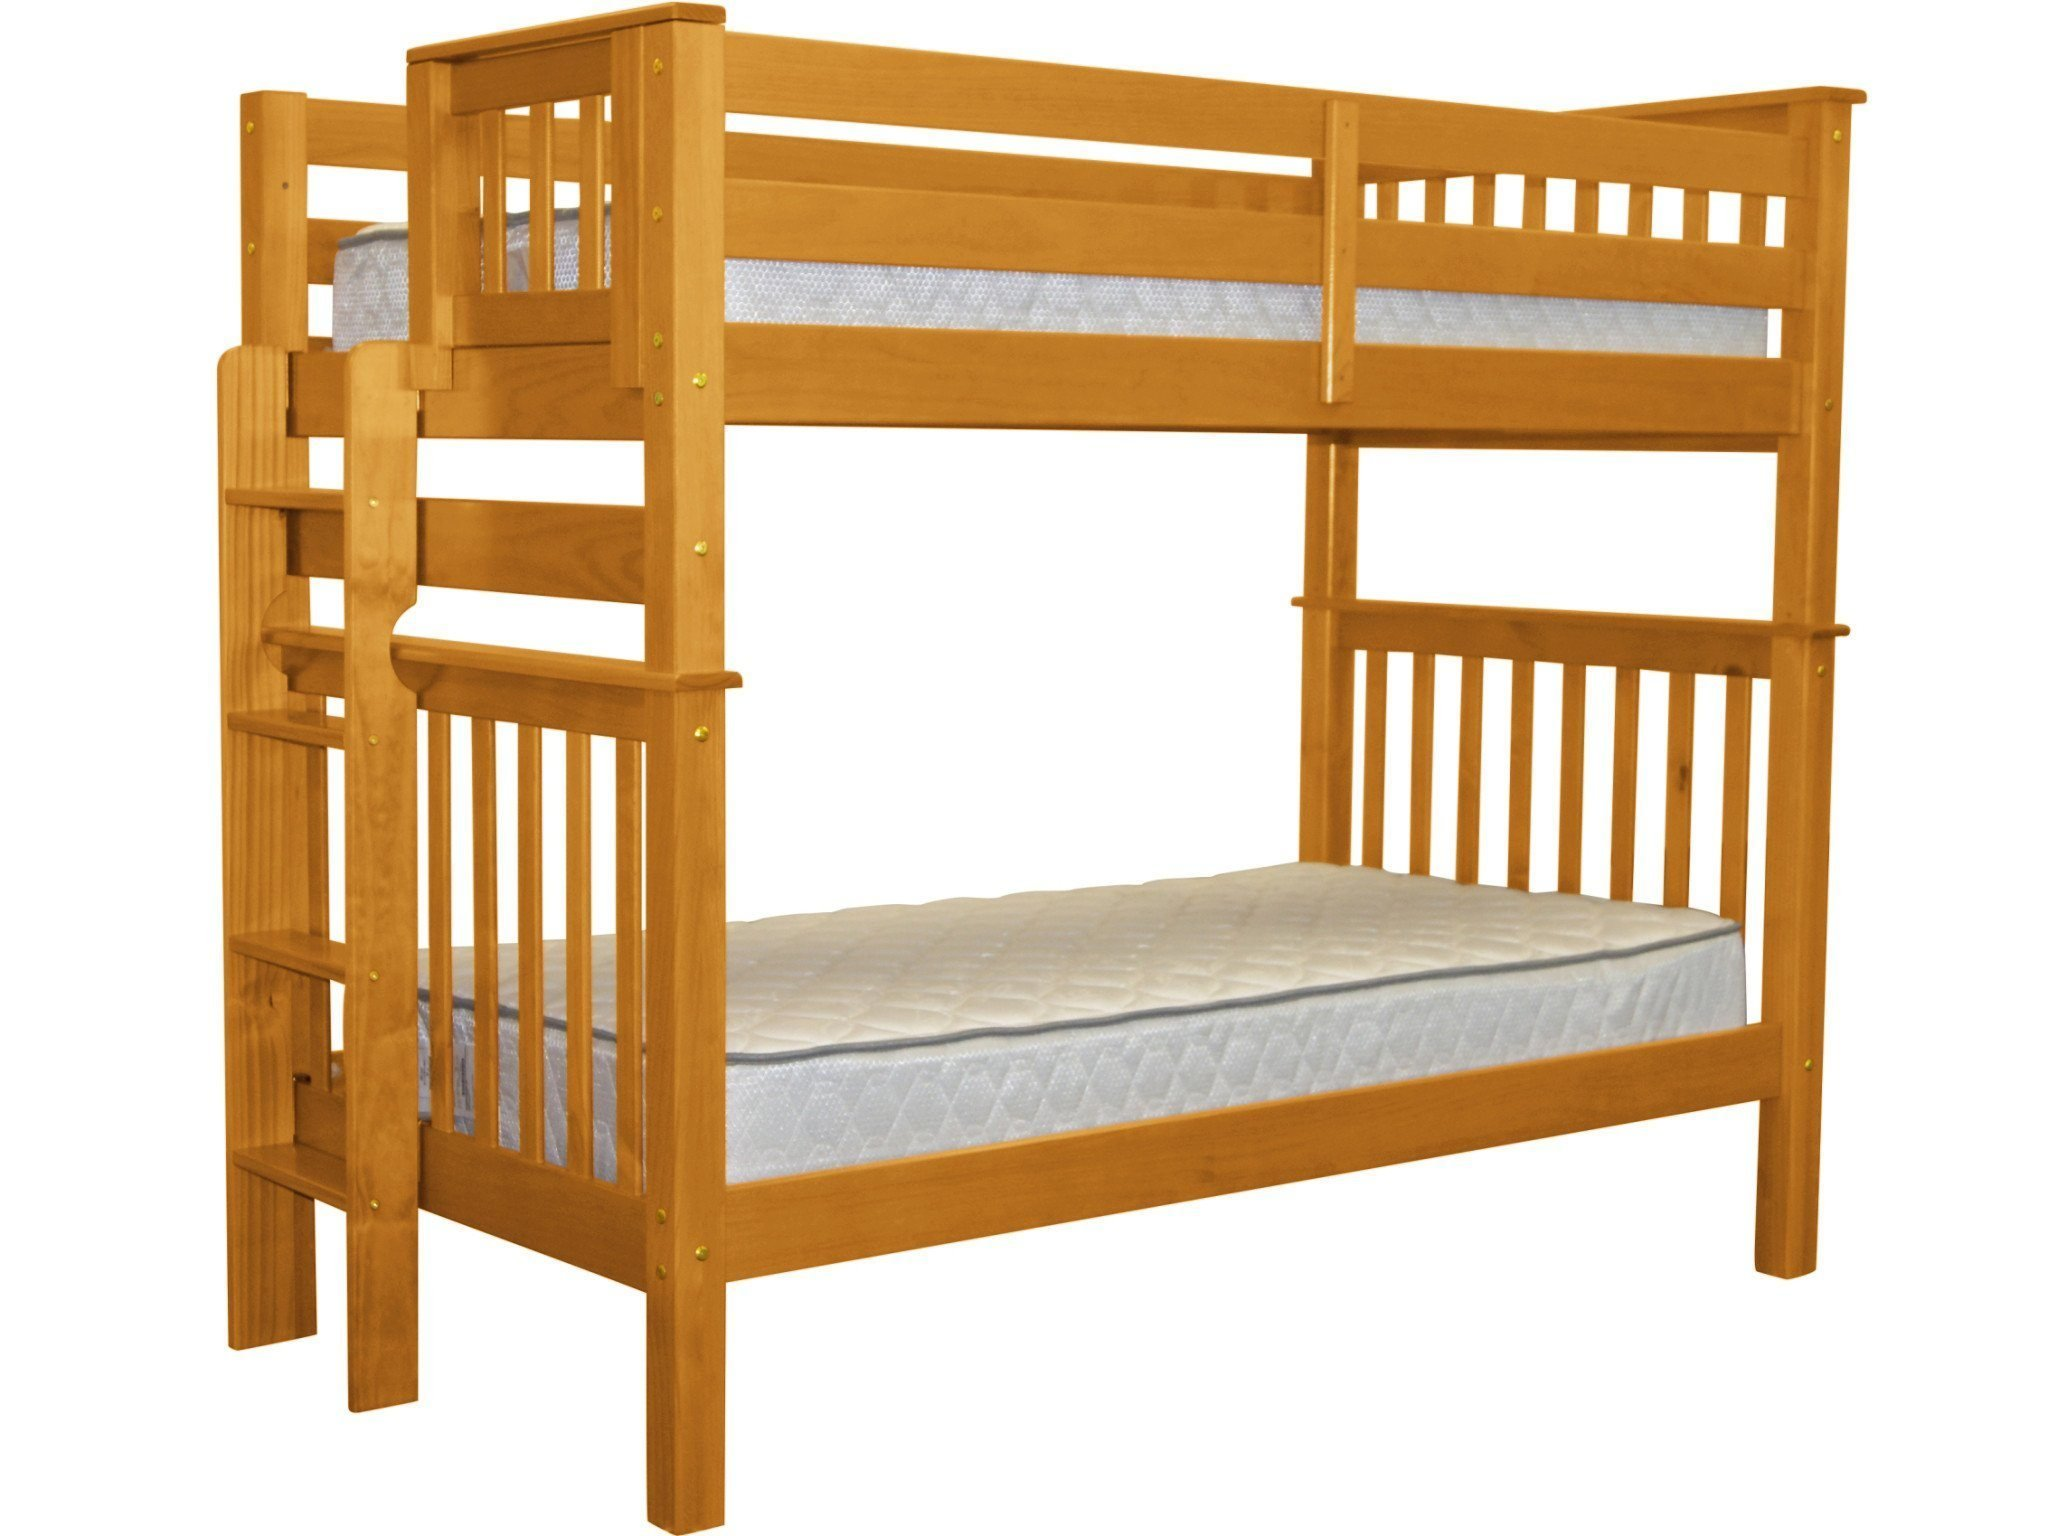 Bedz King Tall Bunk Beds Twin over Twin Mission Style with End Ladder, Honey by Bedz King